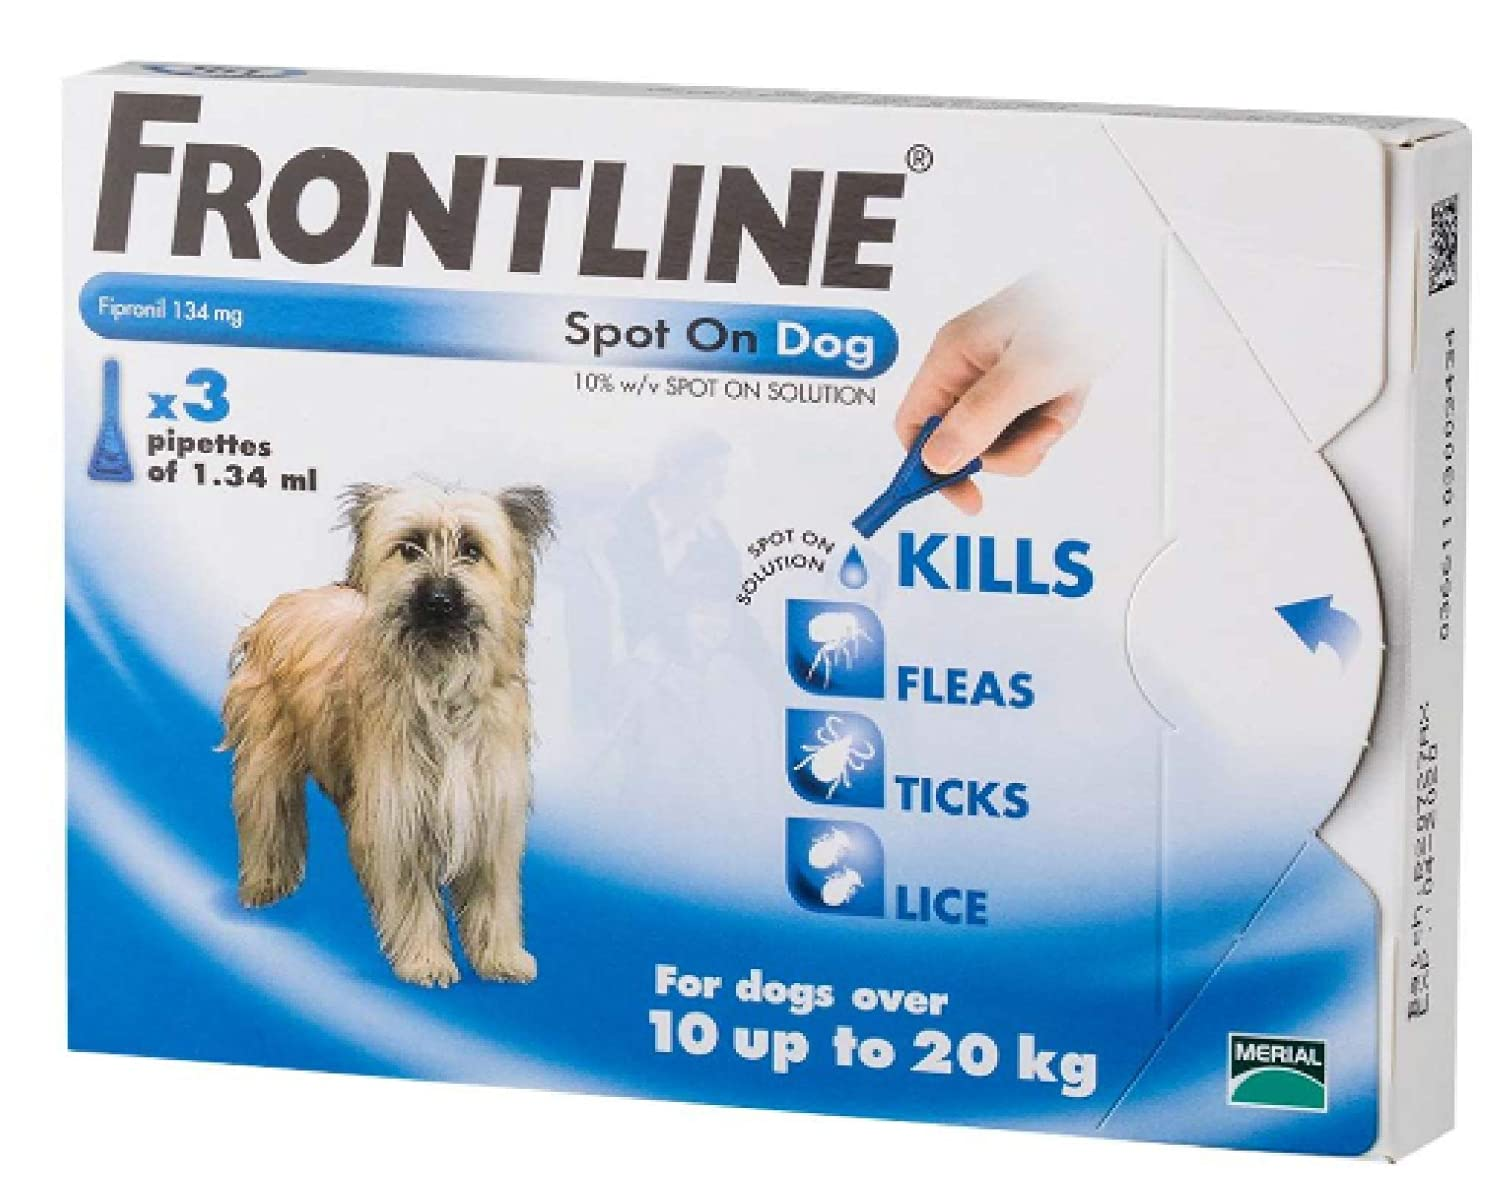 2X Leeway FRONTLINE SPOT ON MEDIUM DOG (3 PIP) 1020KG FLEA TICK & MITE KILLS & PREVENTS (2X)